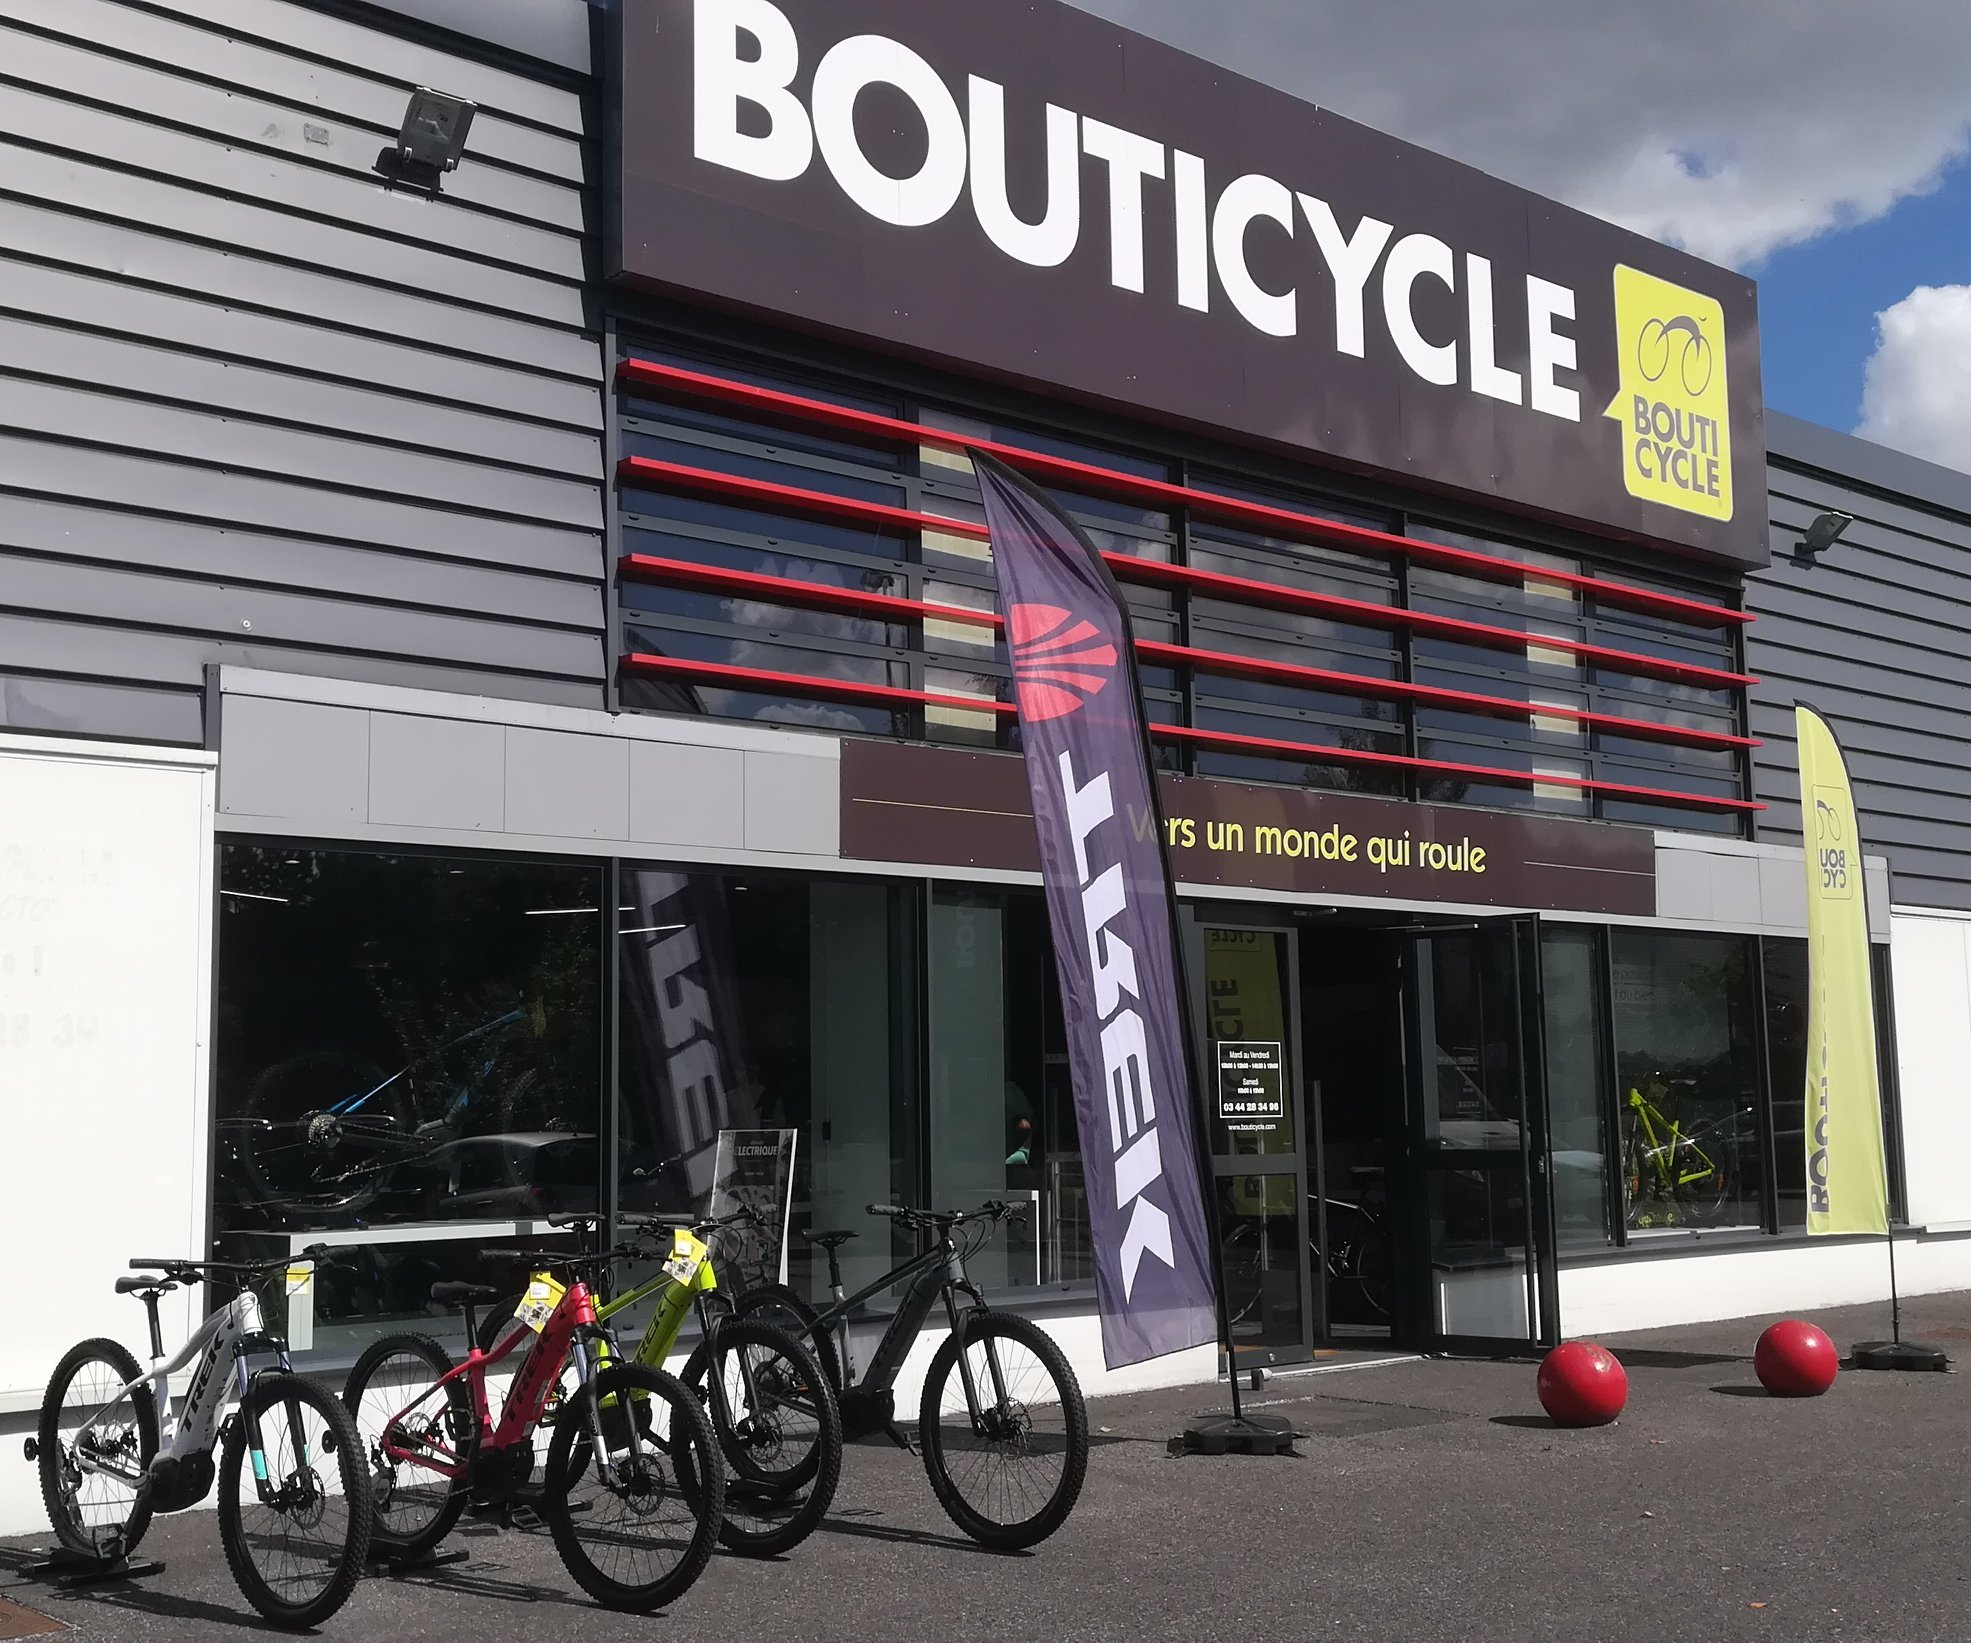 Comment contacter Bouticycle